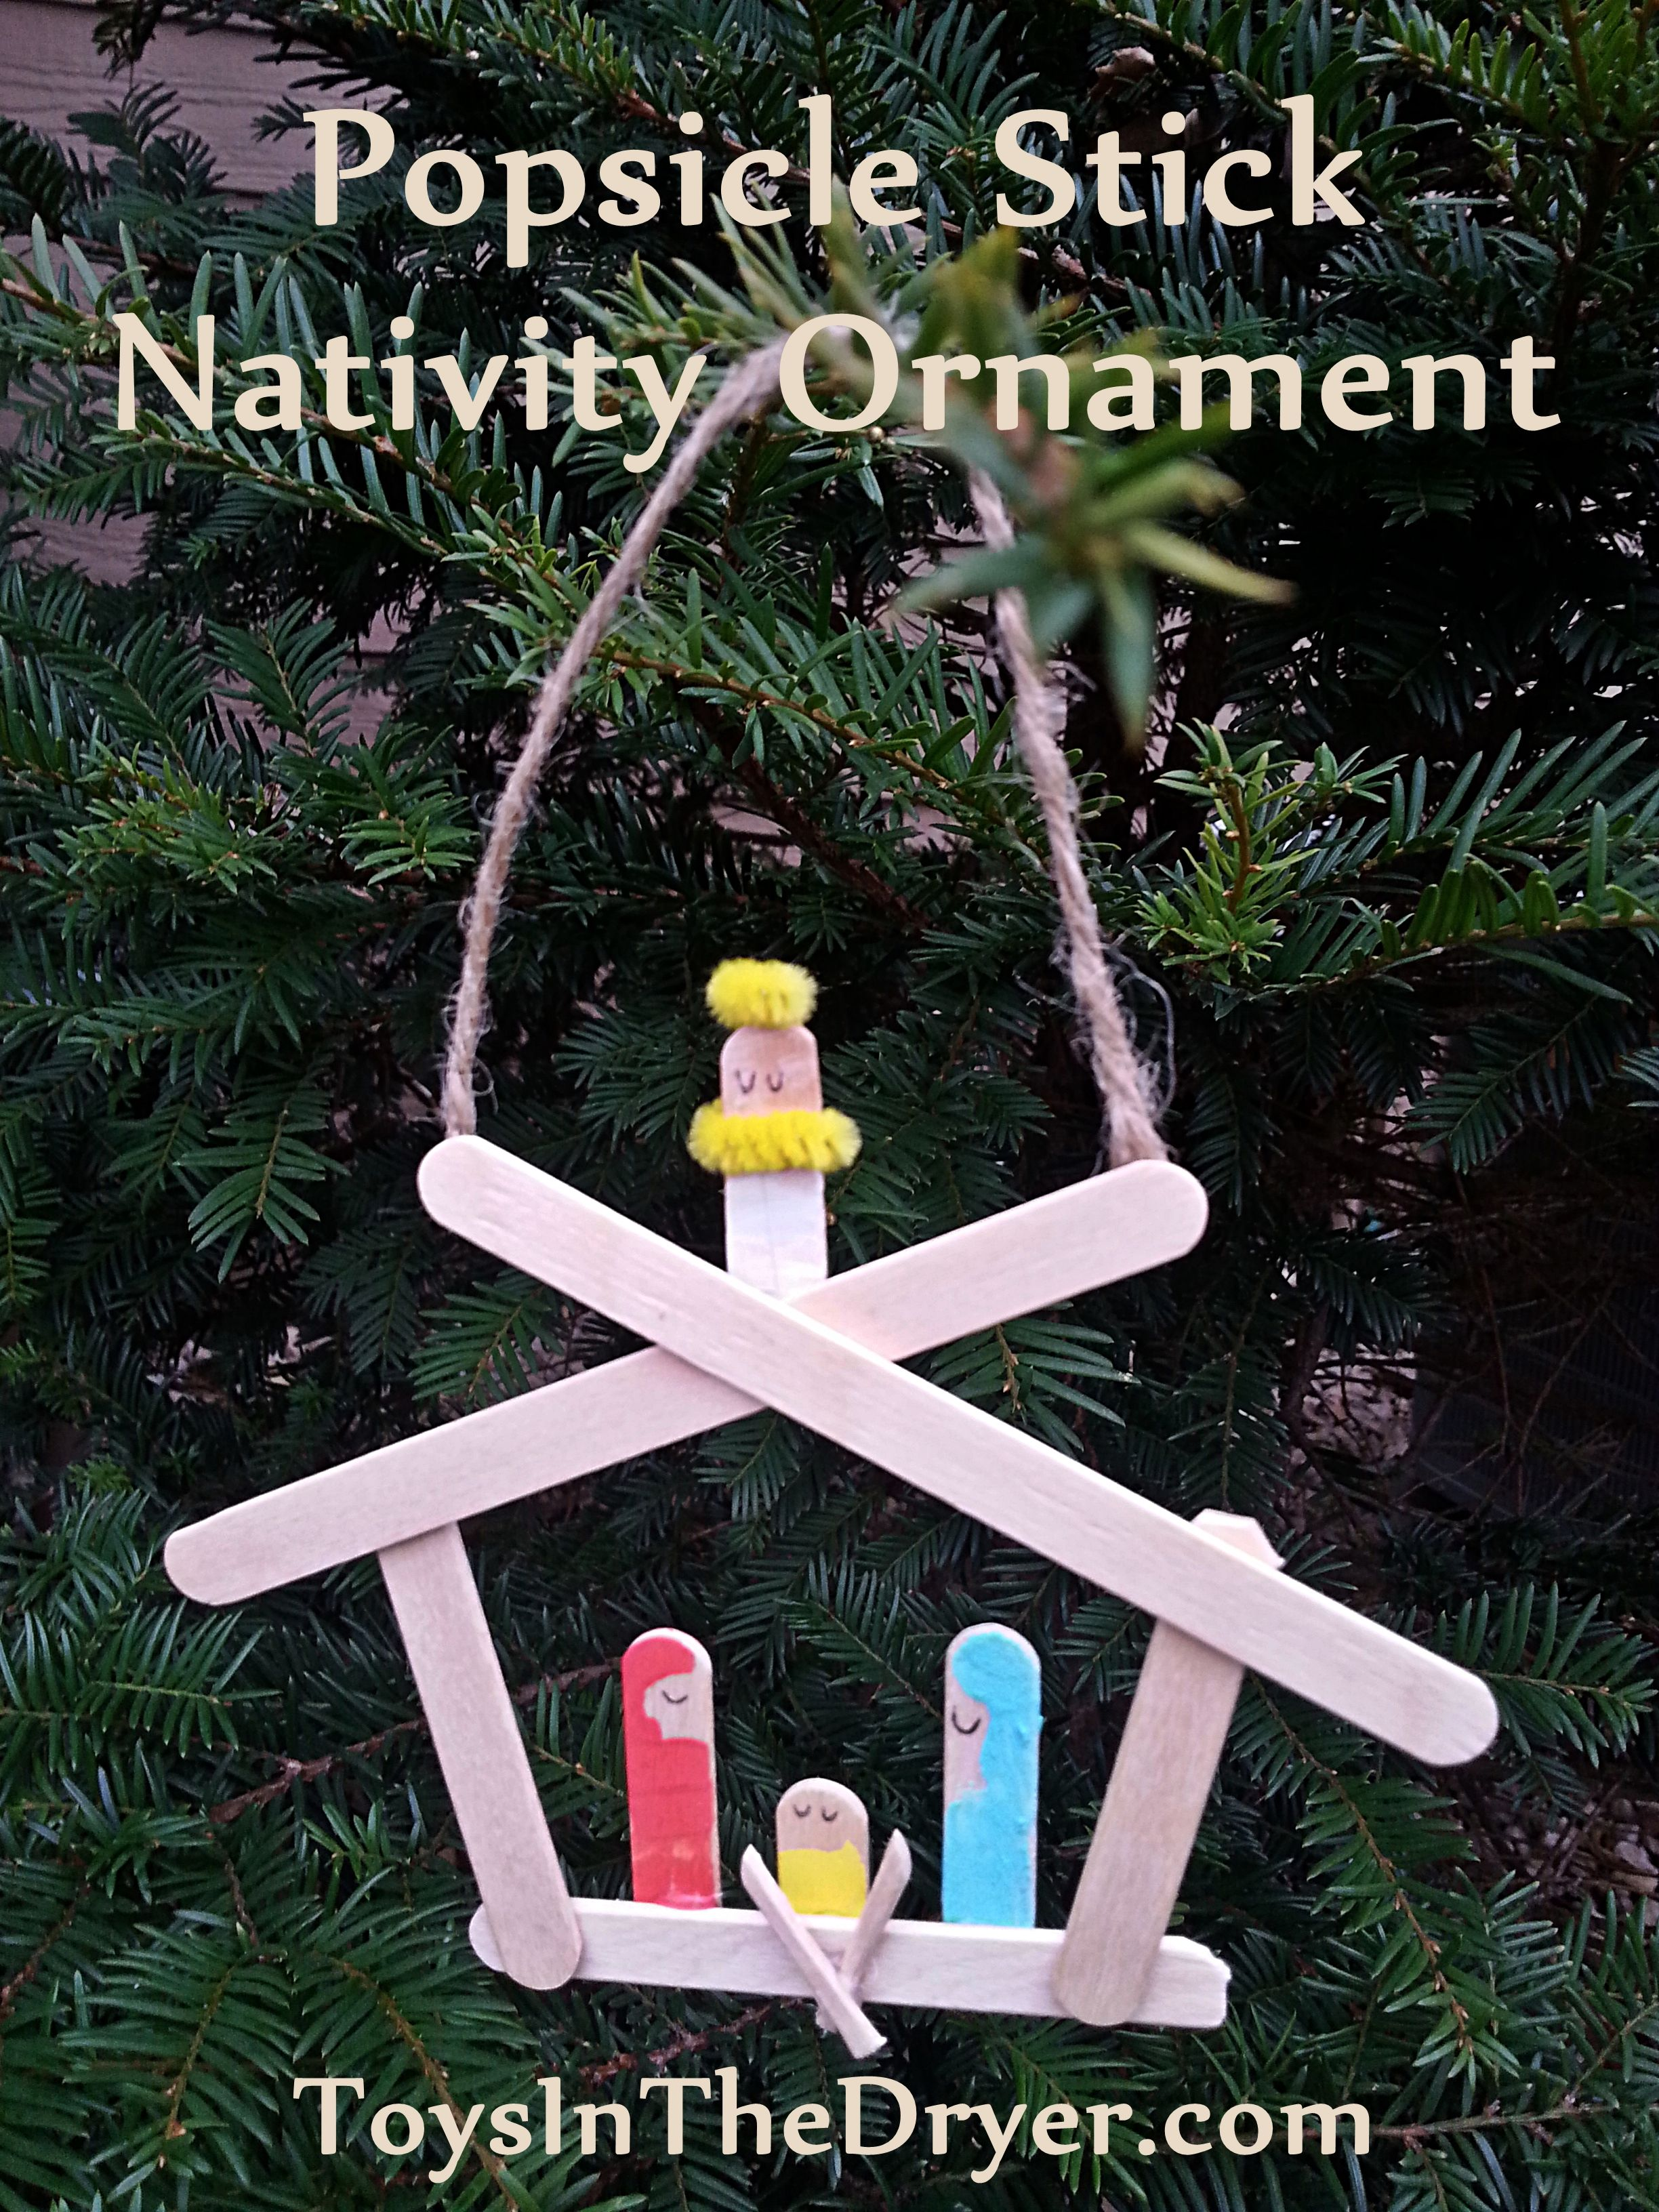 How to make a Nativity ornament out of popsicle sticks